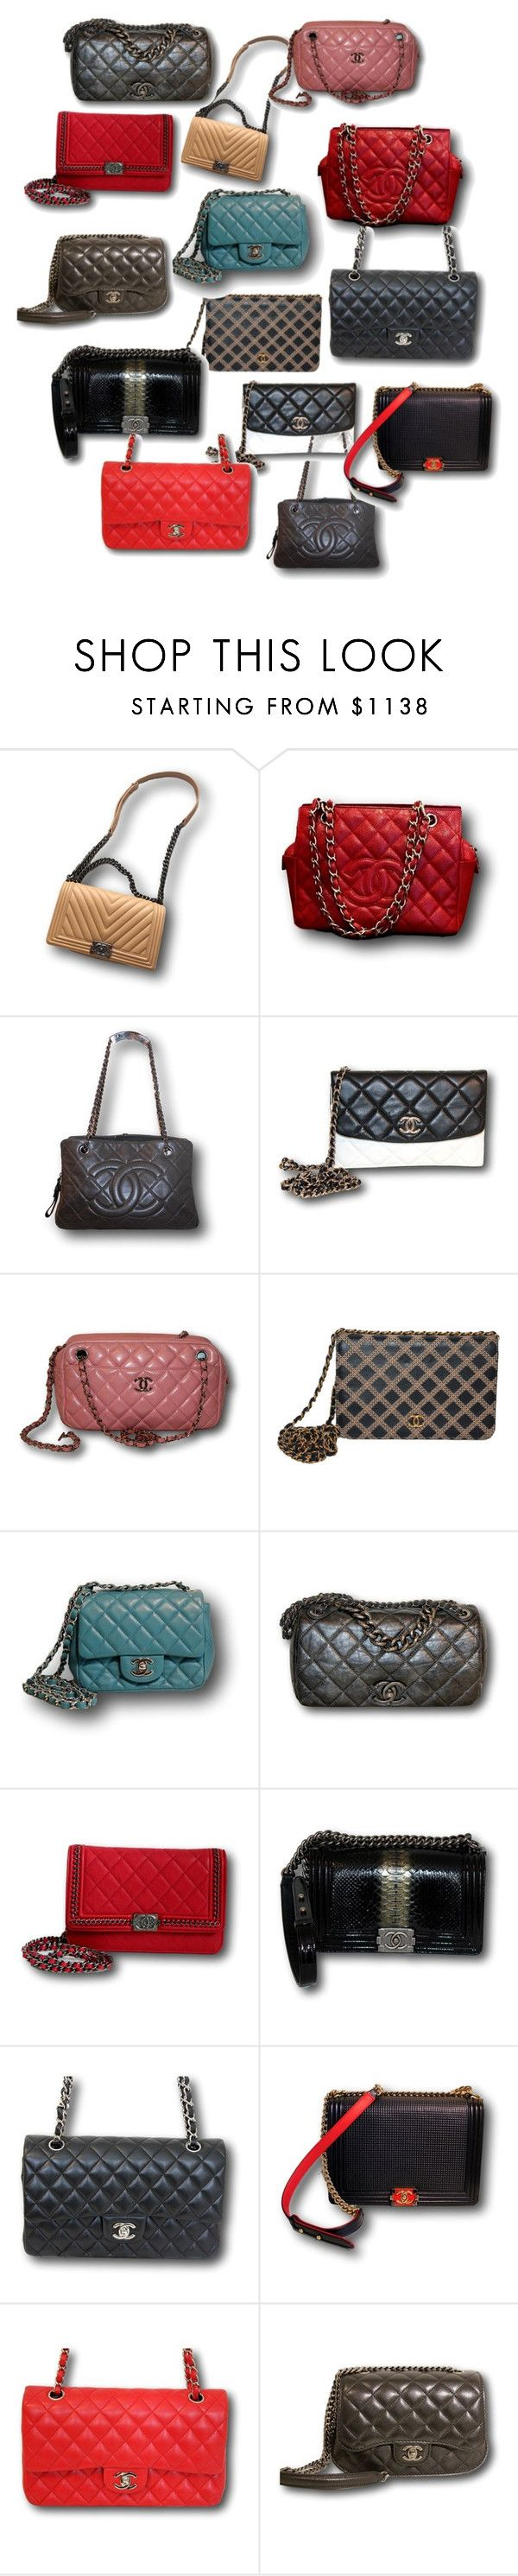 """""""CHANEL BAGS SALE!"""" by preselected on Polyvore"""